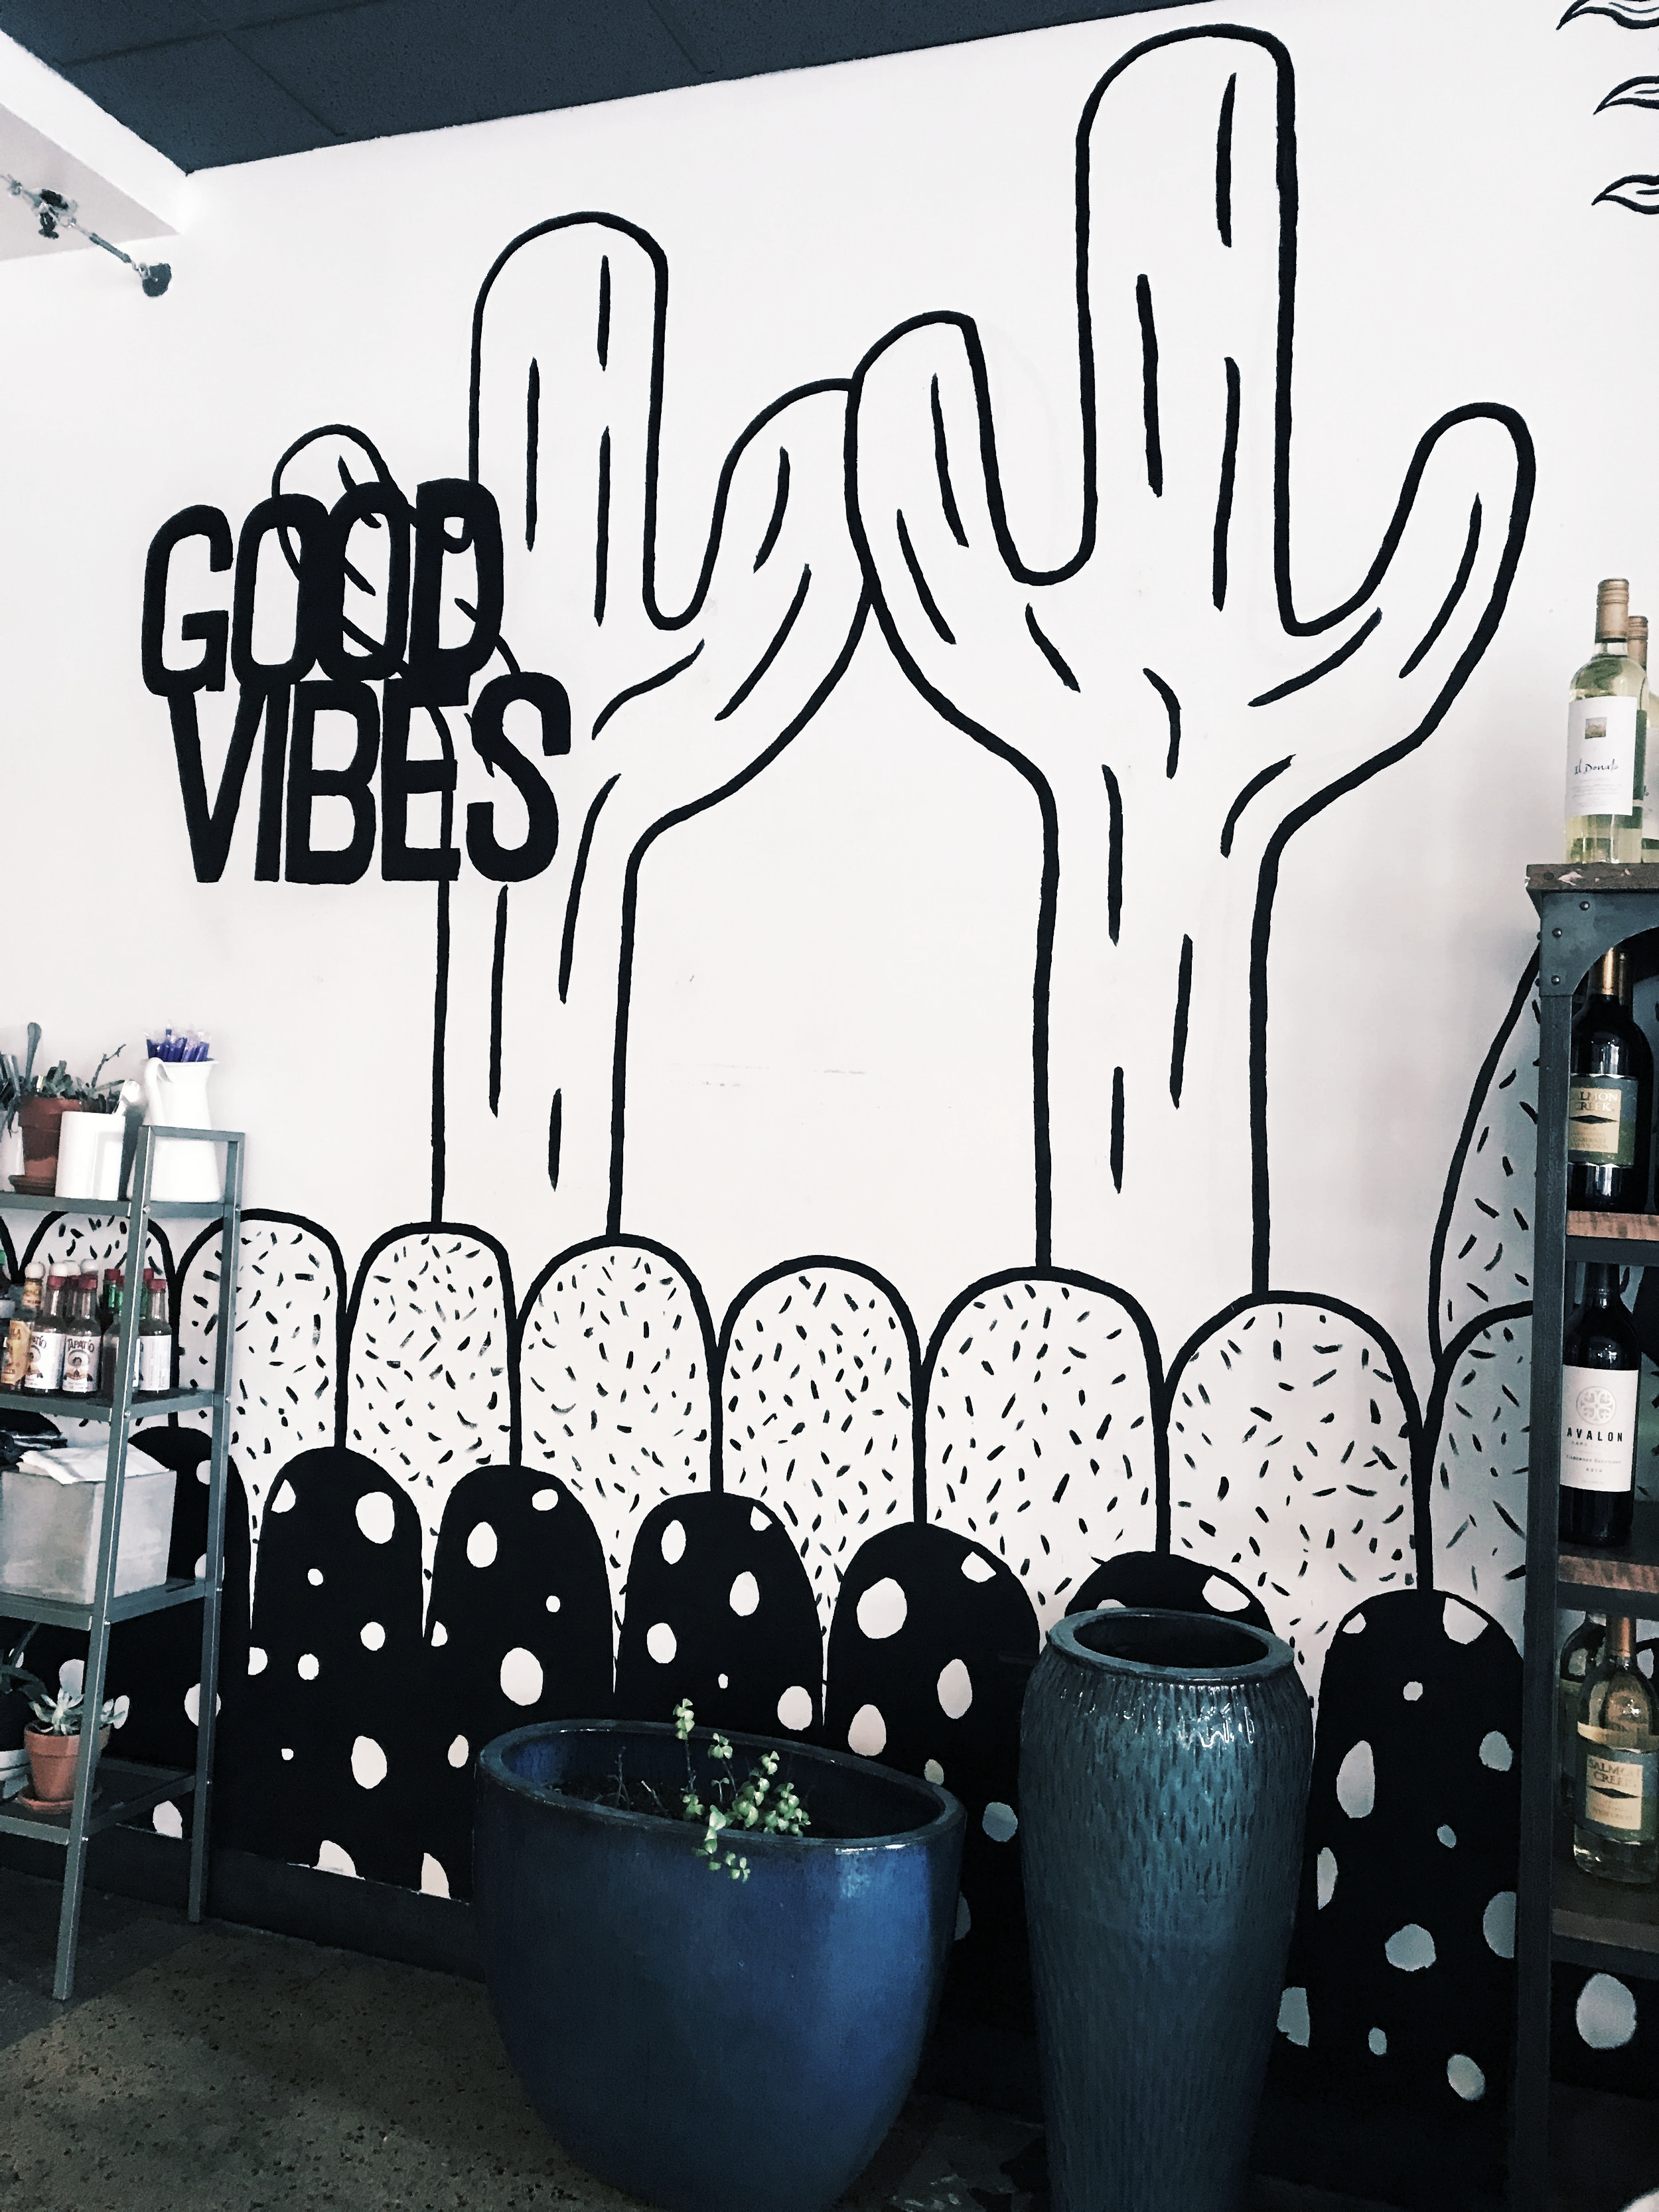 Kaleidescope Juicery - This cute fast-cash place has so many fresh options, and was voted as having the best açai bowl in Phoenix! Vegan, vegetarian, paleo, GF, etc. options are all available to fit your dietary needs!Location: Downtown